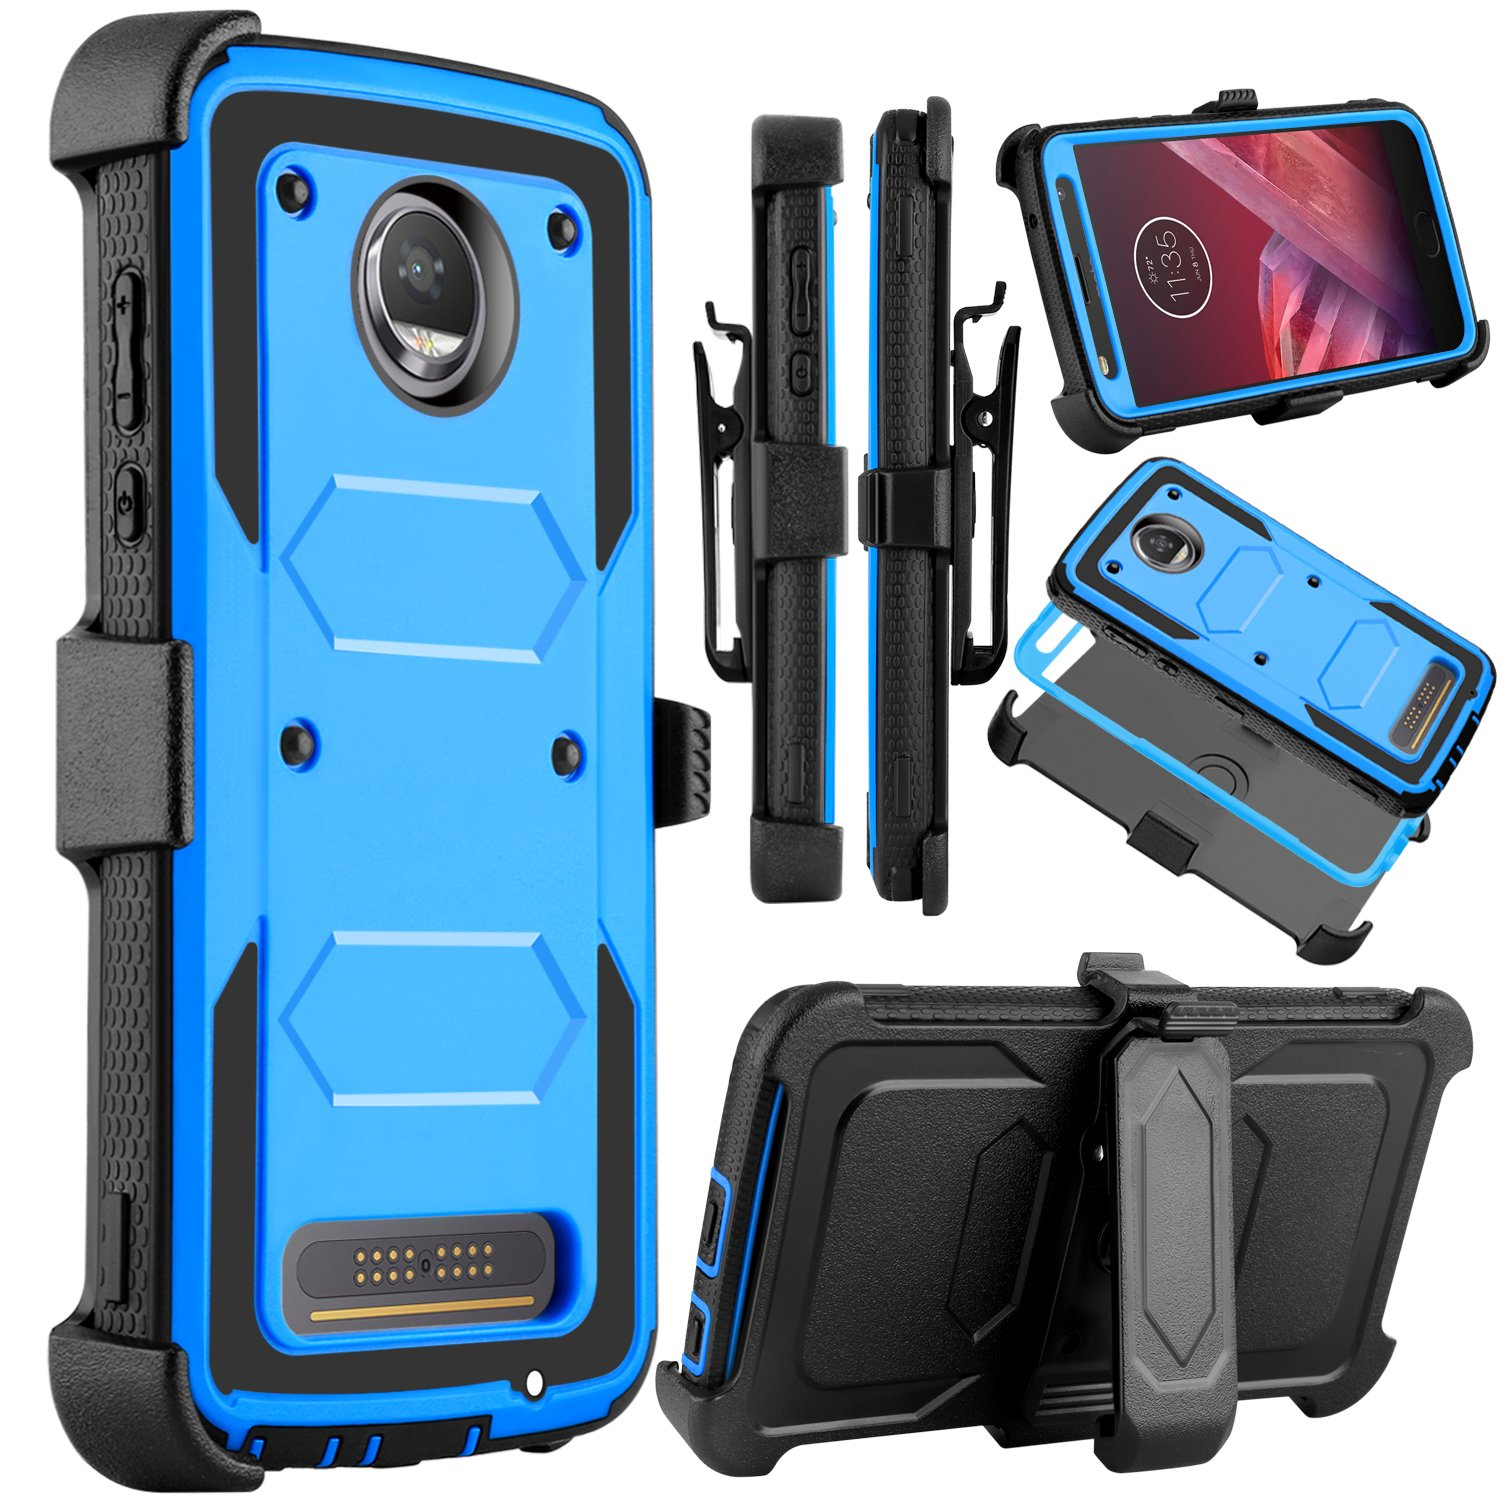 Funda Moto Z2 Force / Play - Super Protectora AZUL (xsr)